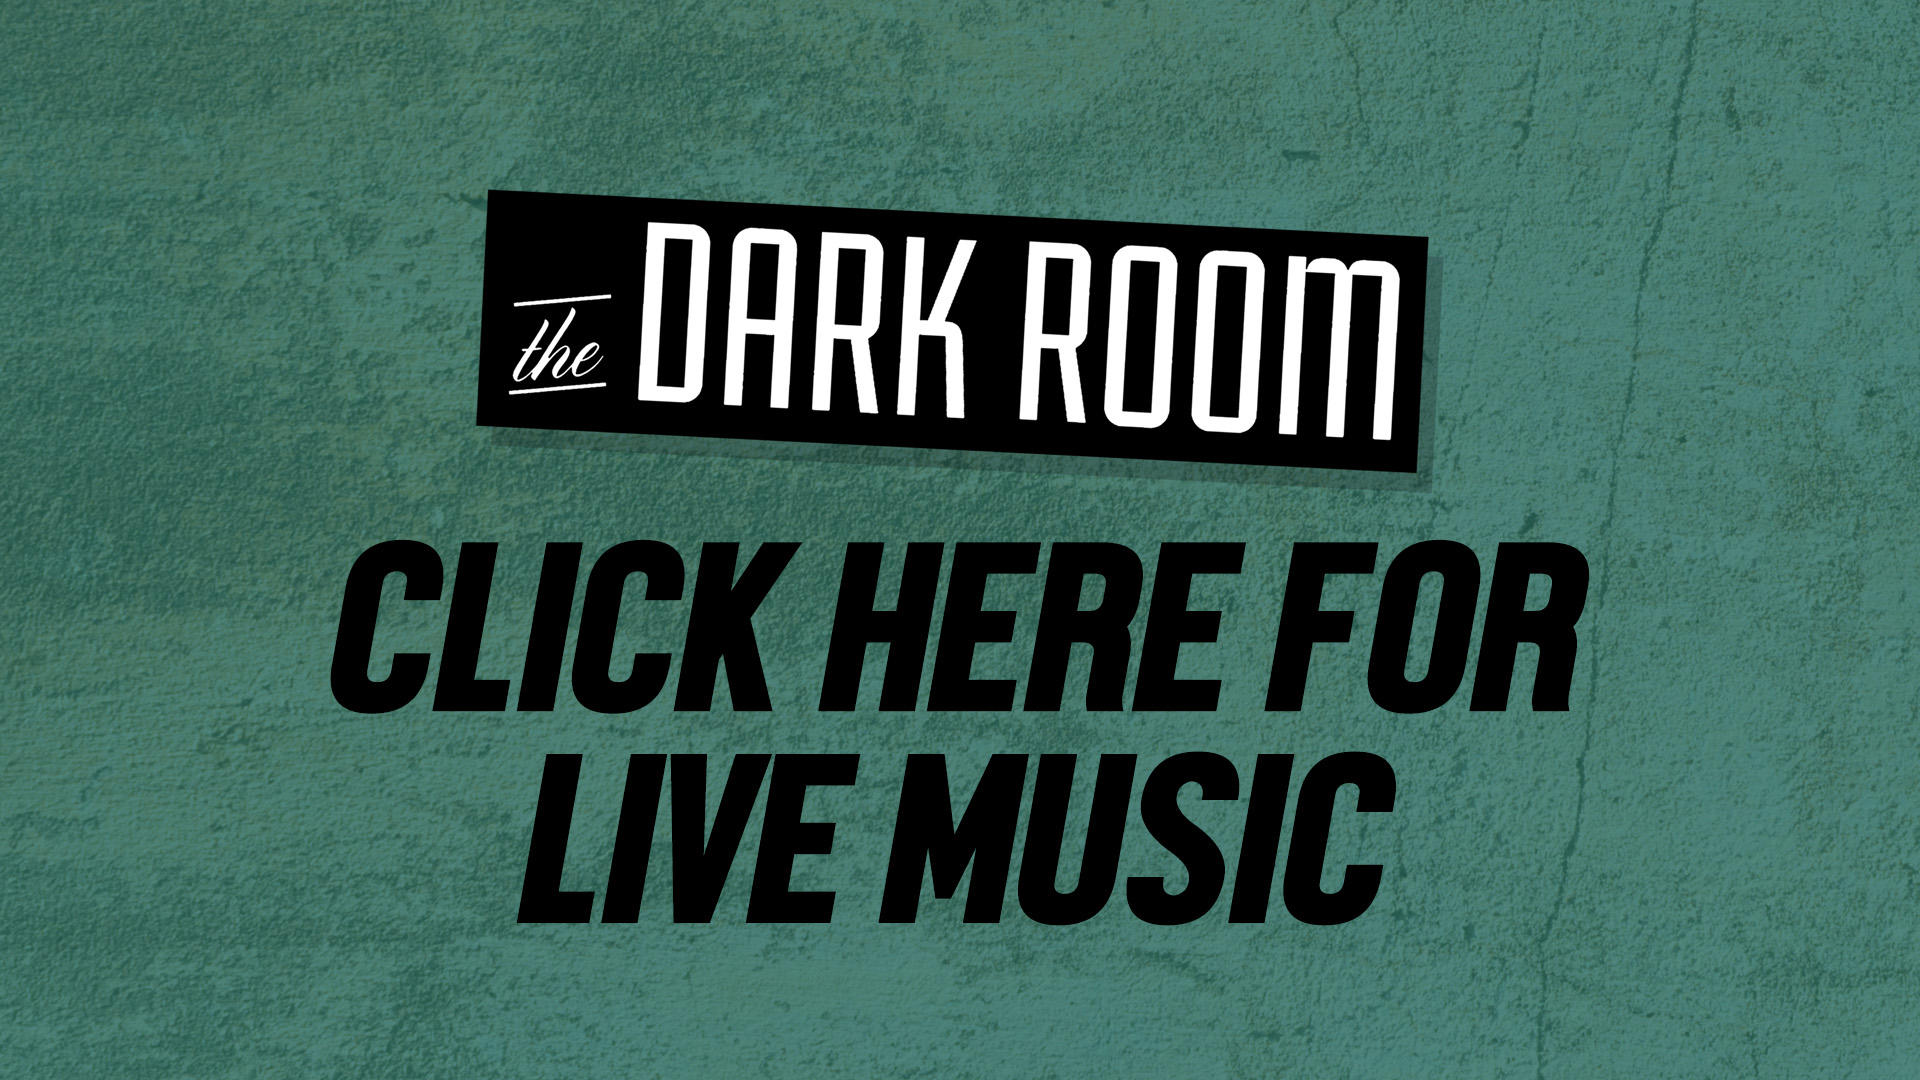 Live Music at The Dark Room